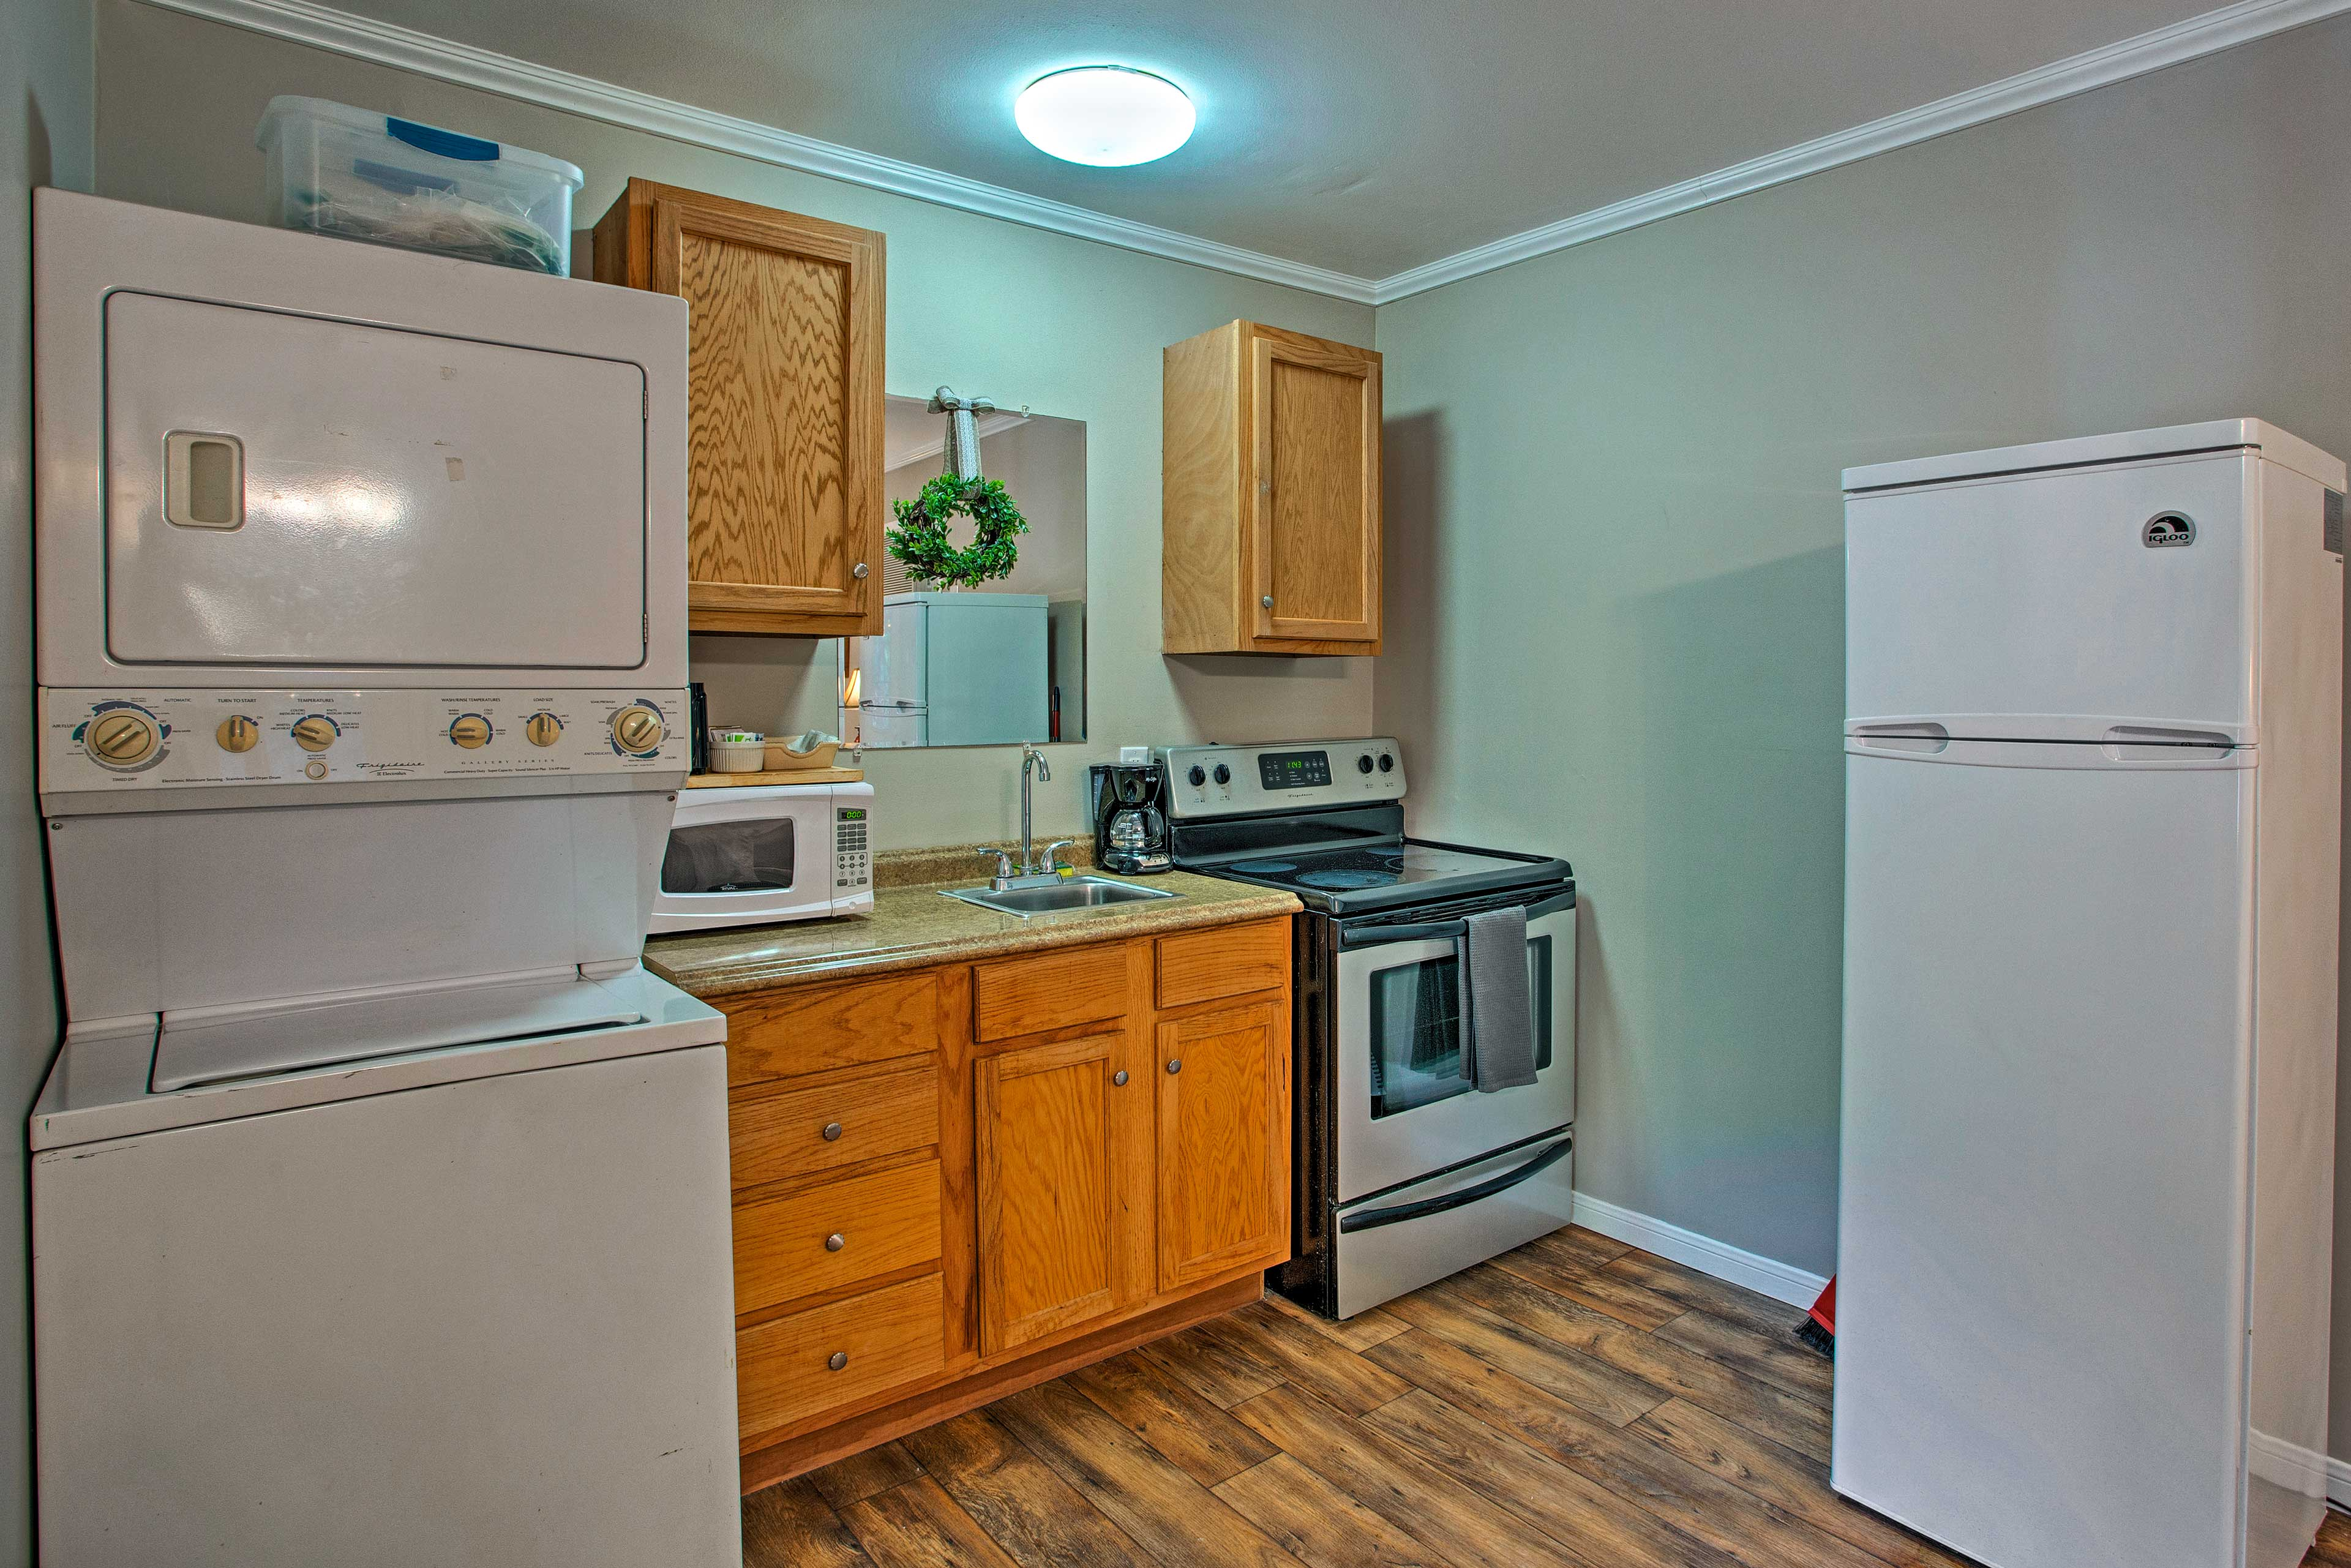 The cabin features a well-equipped kitchen as well as laundry machines.